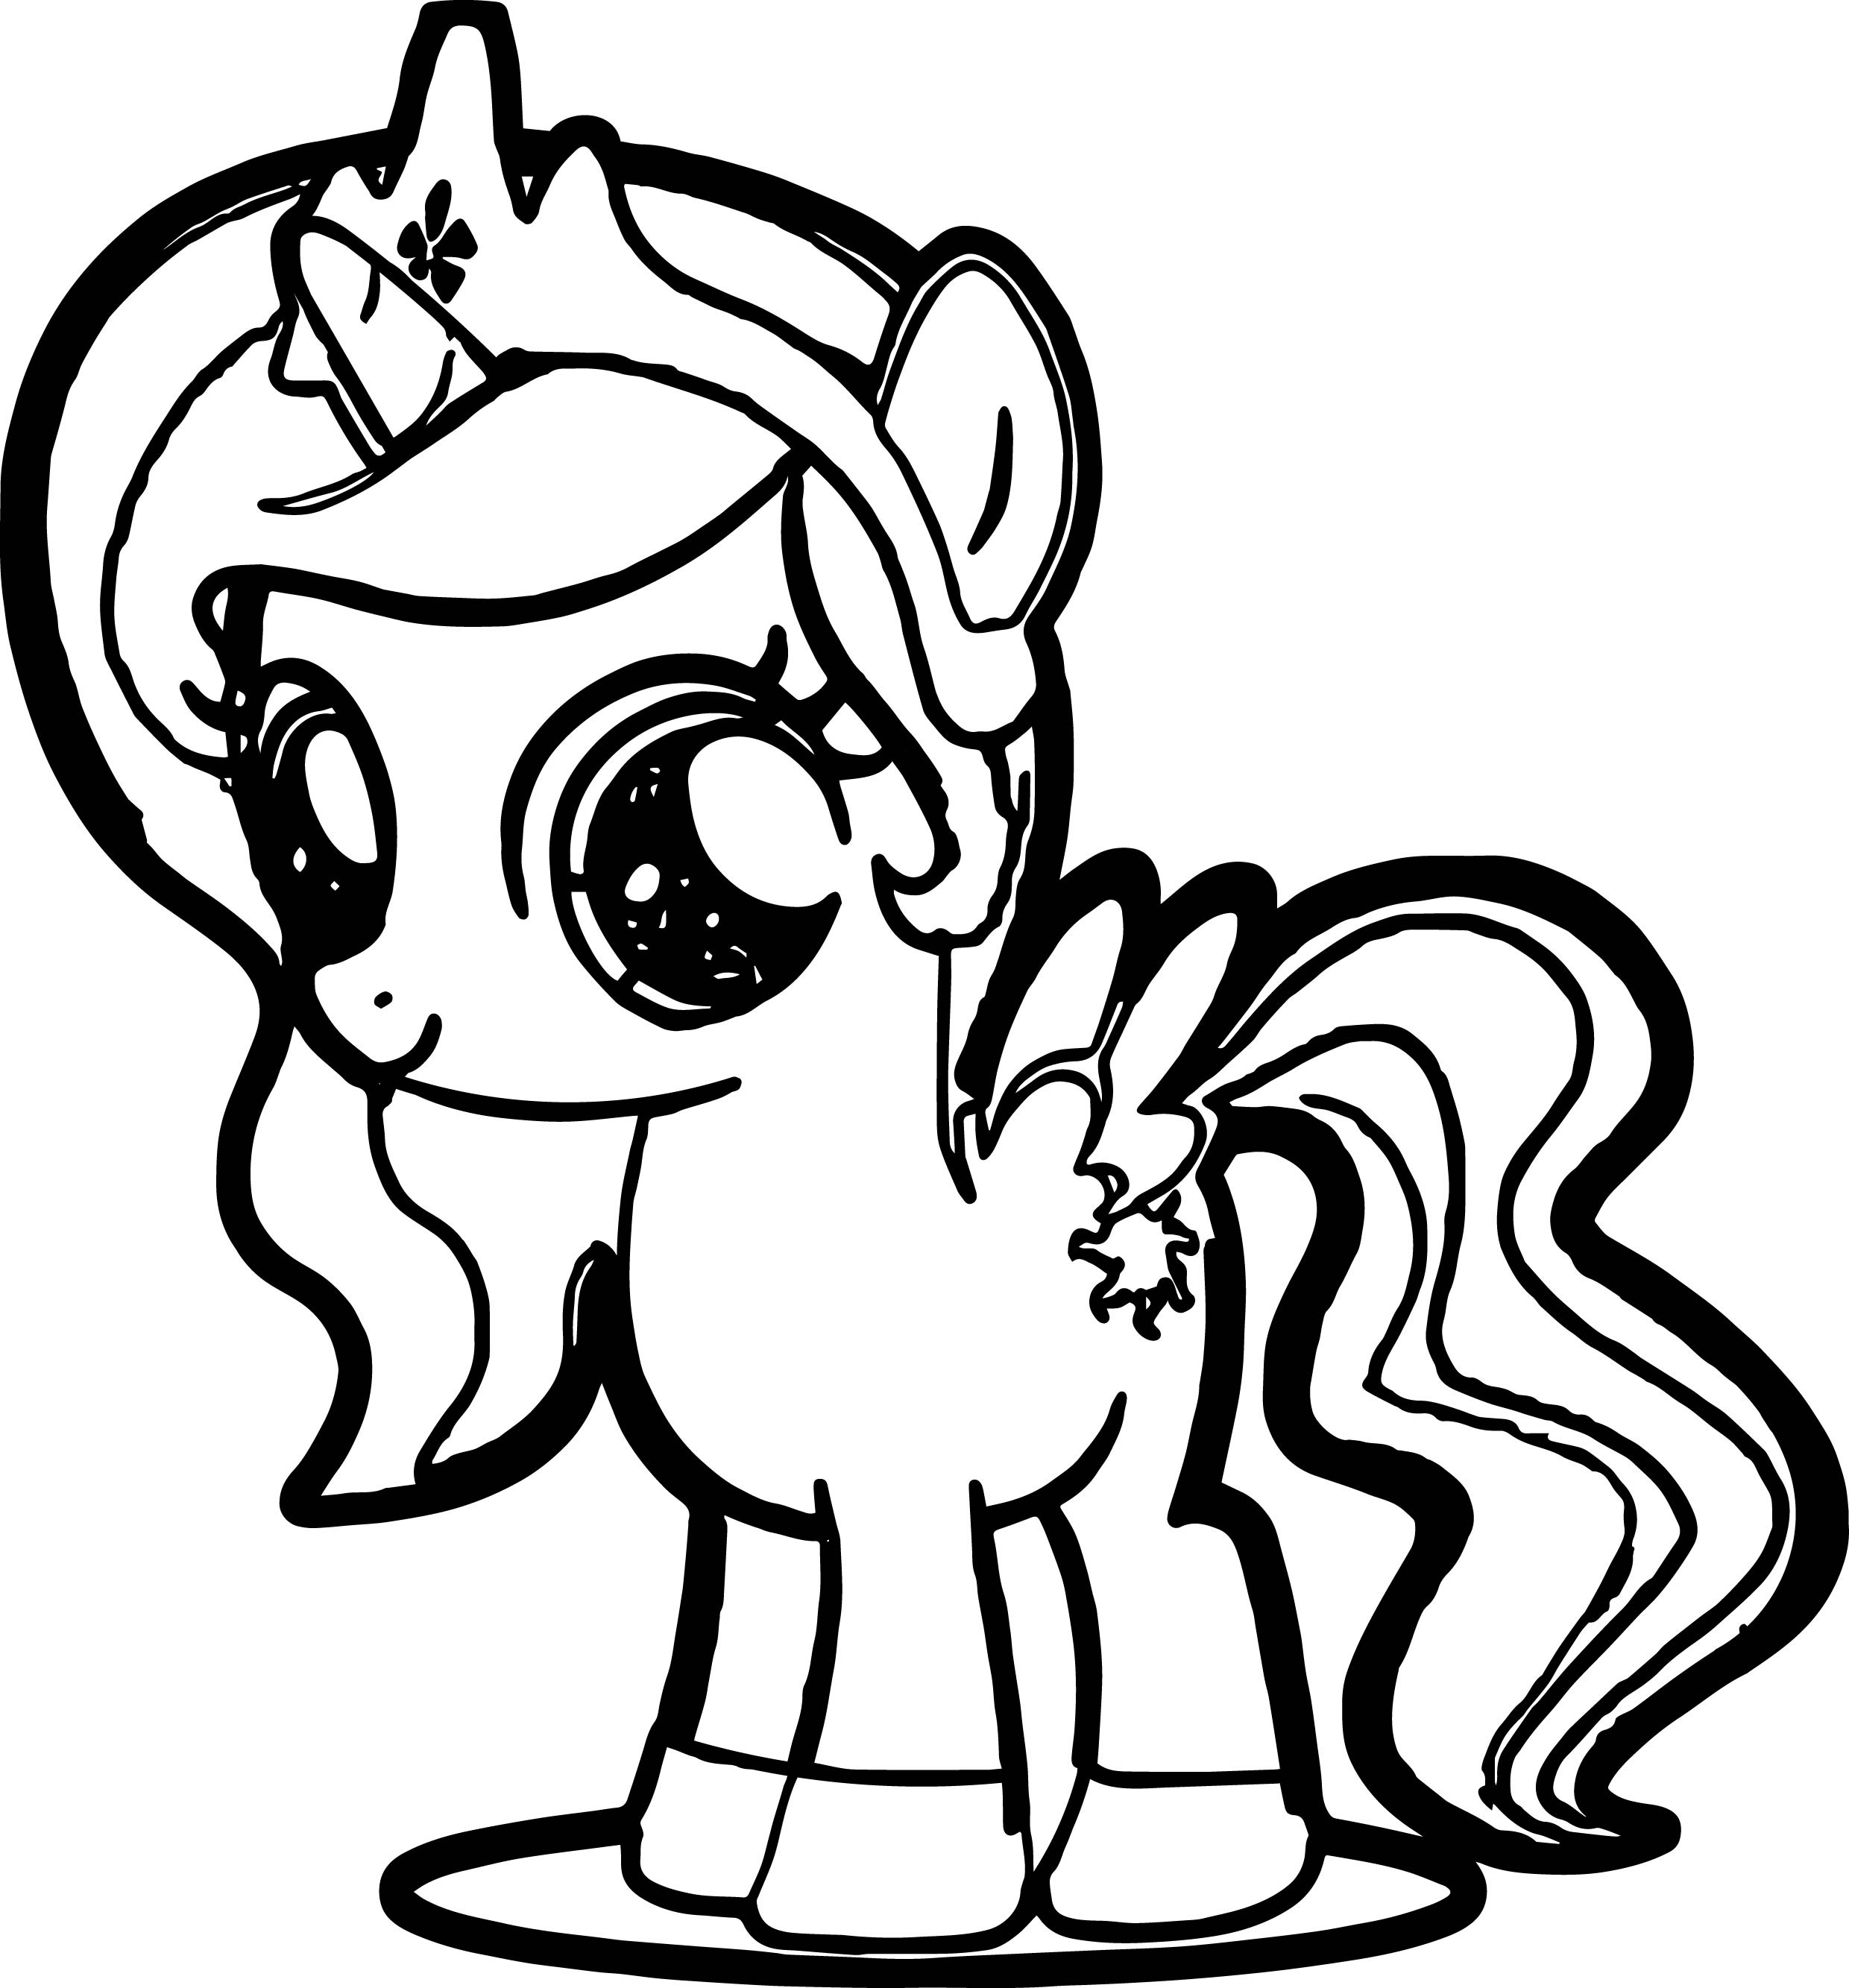 860 Coloring-pages/cartoons/my-little-pony For Free